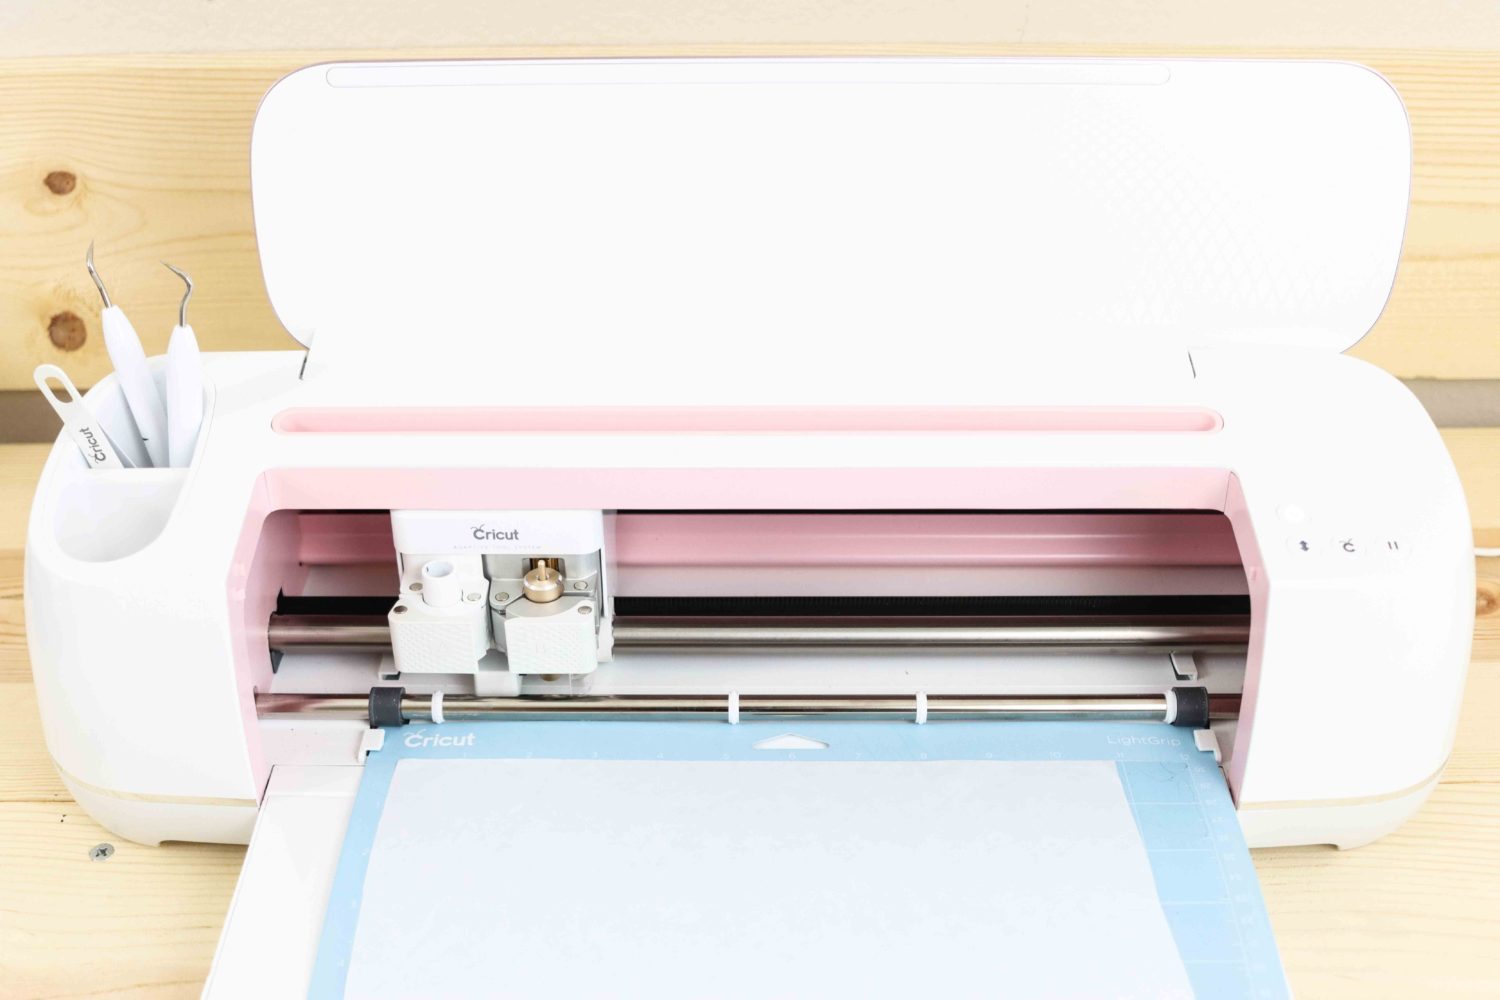 cutting freezer paper without carrier sheet